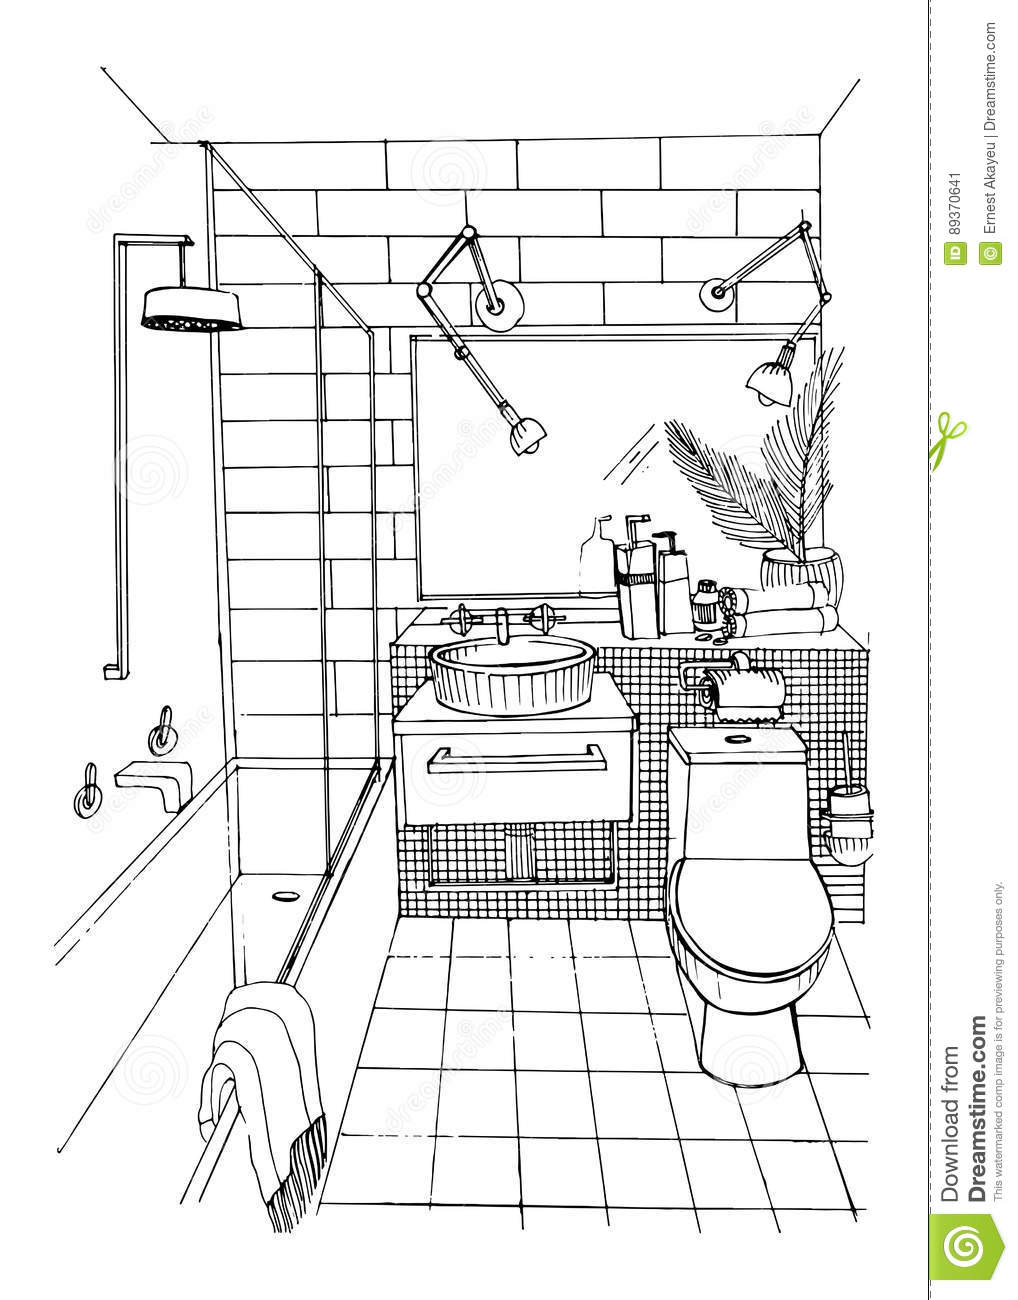 Interior Design Rendering Bathroom Interior Design Drawing